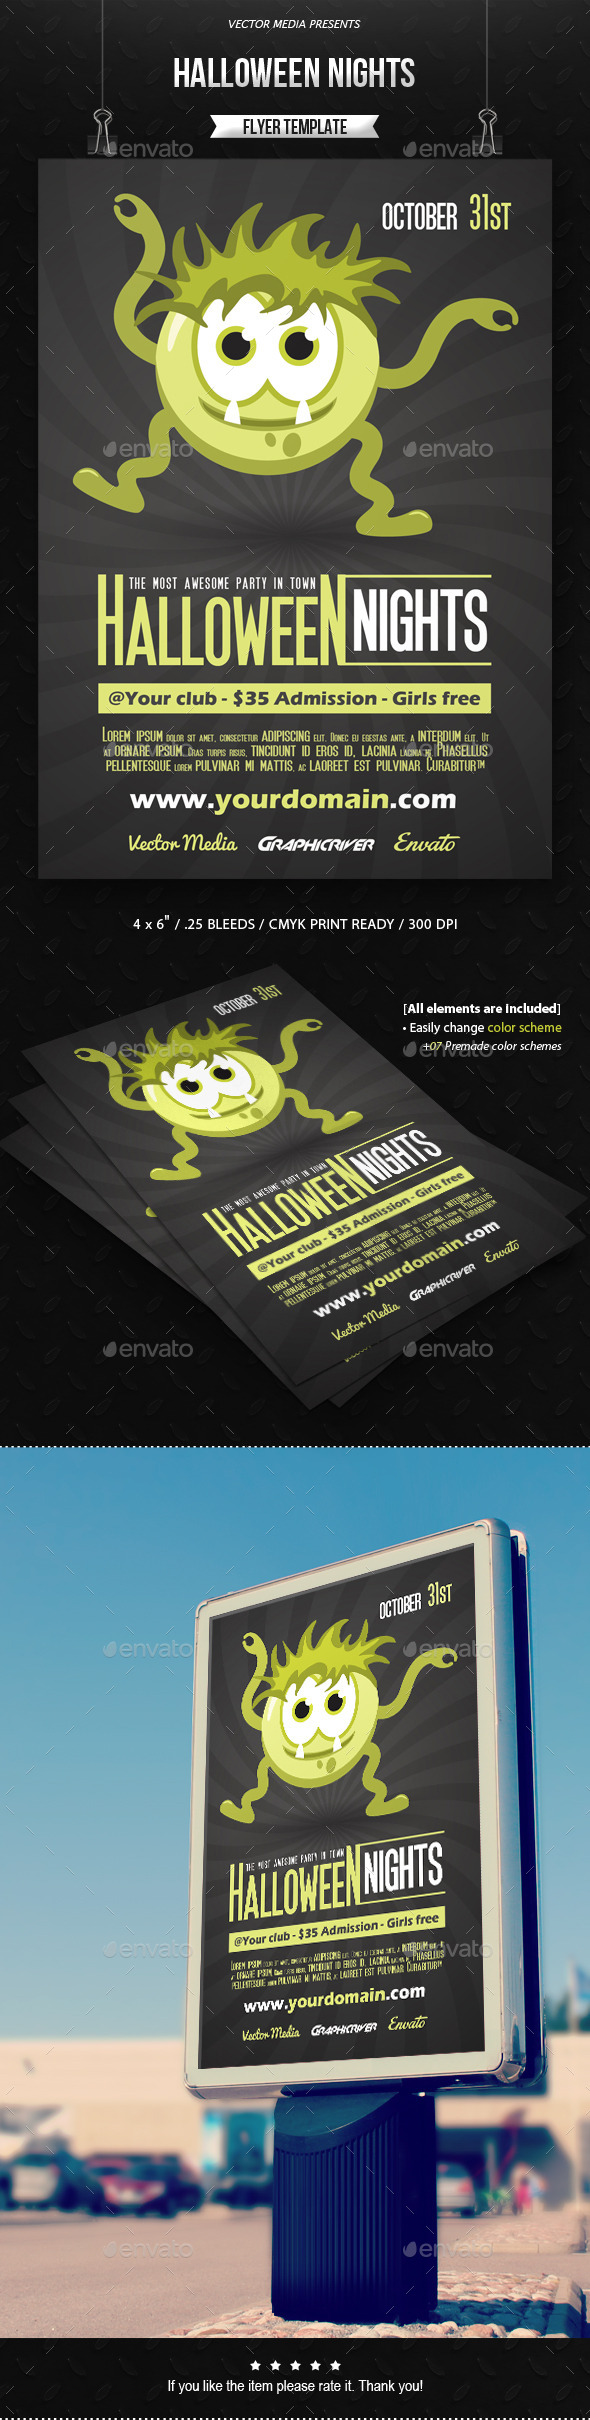 Halloween Nights - Flyer